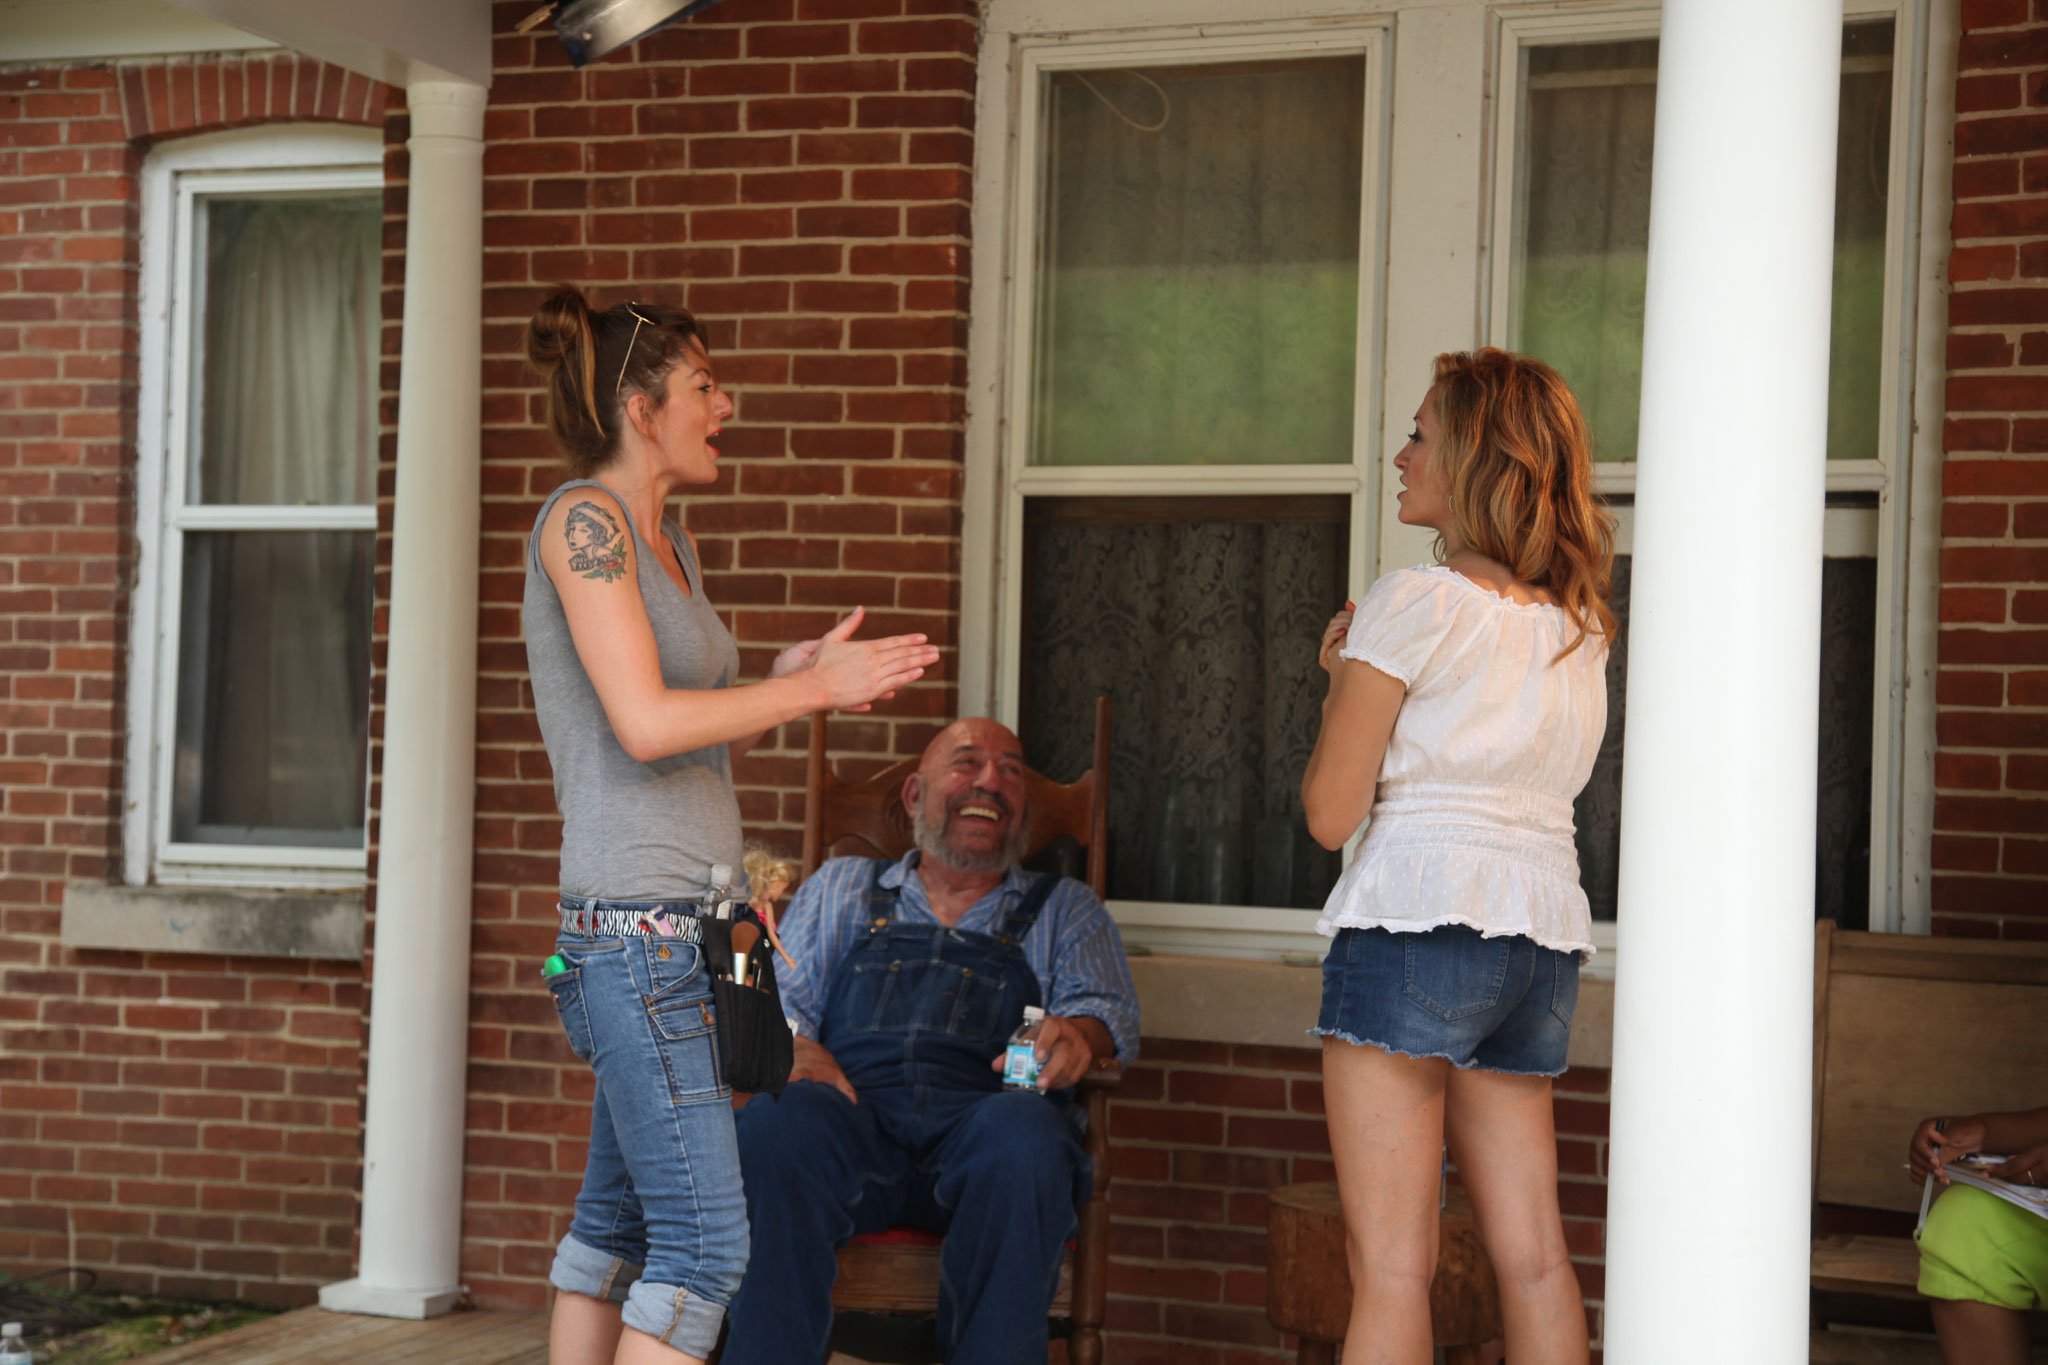 Some of the family hanging out on the front porch of Big Daddy's house.